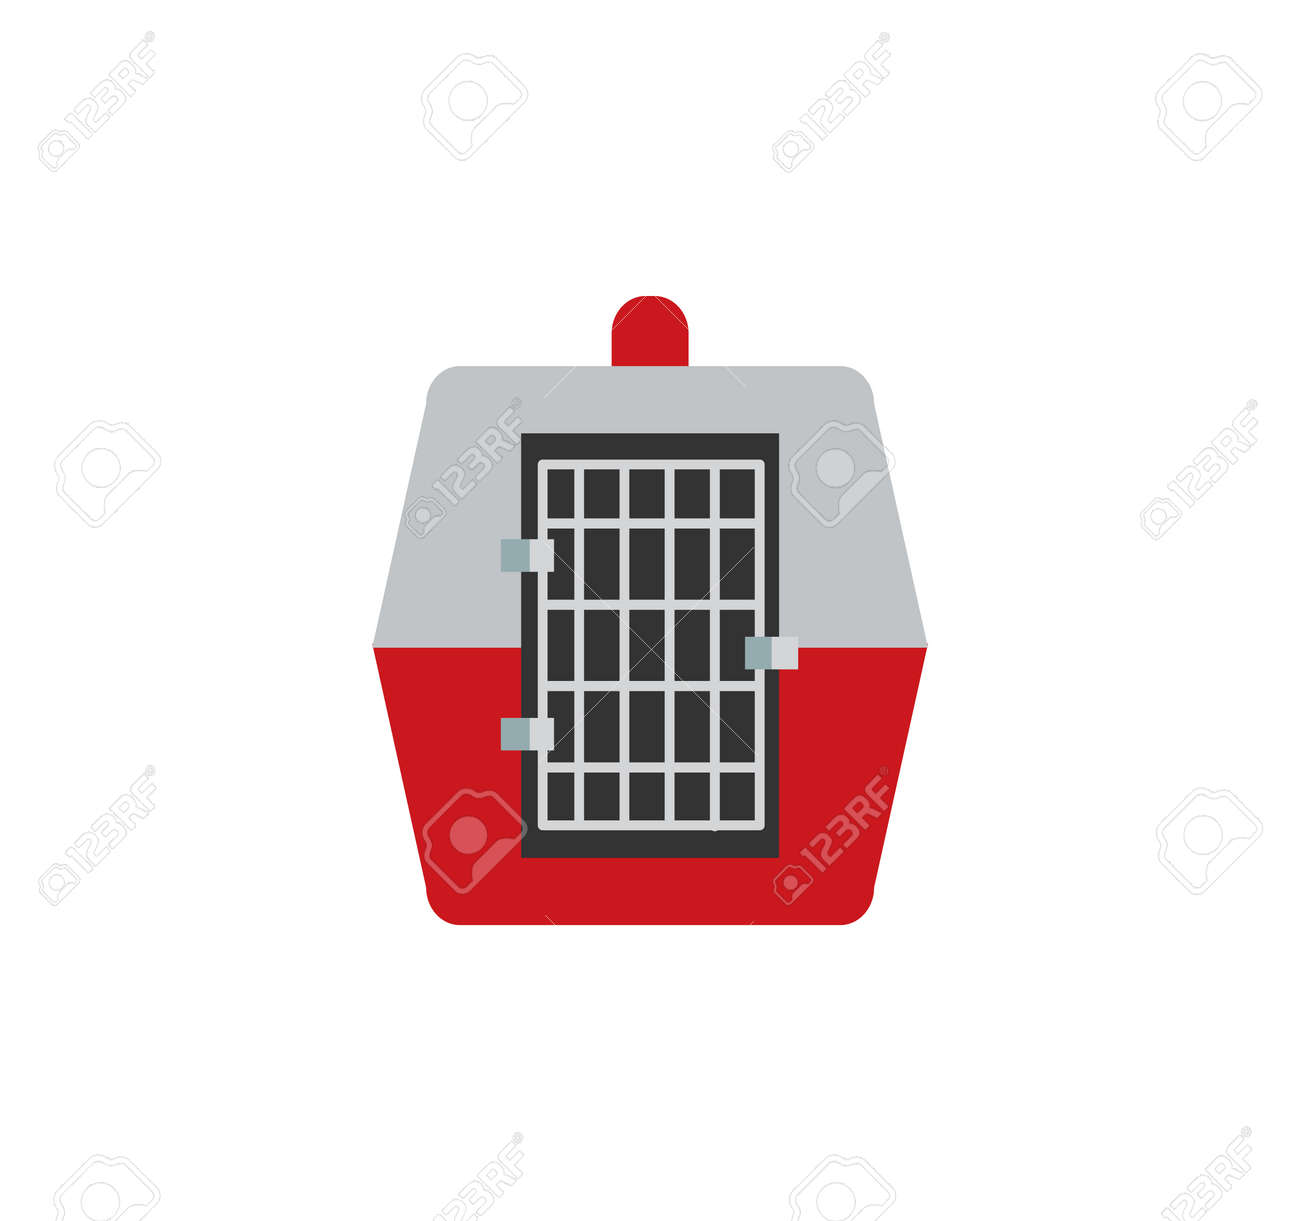 Travel pet carrier for animal in-cabin airline transportation, comfortable cage made of plastic carry-on item allowance by airport vector illustration - 111653816